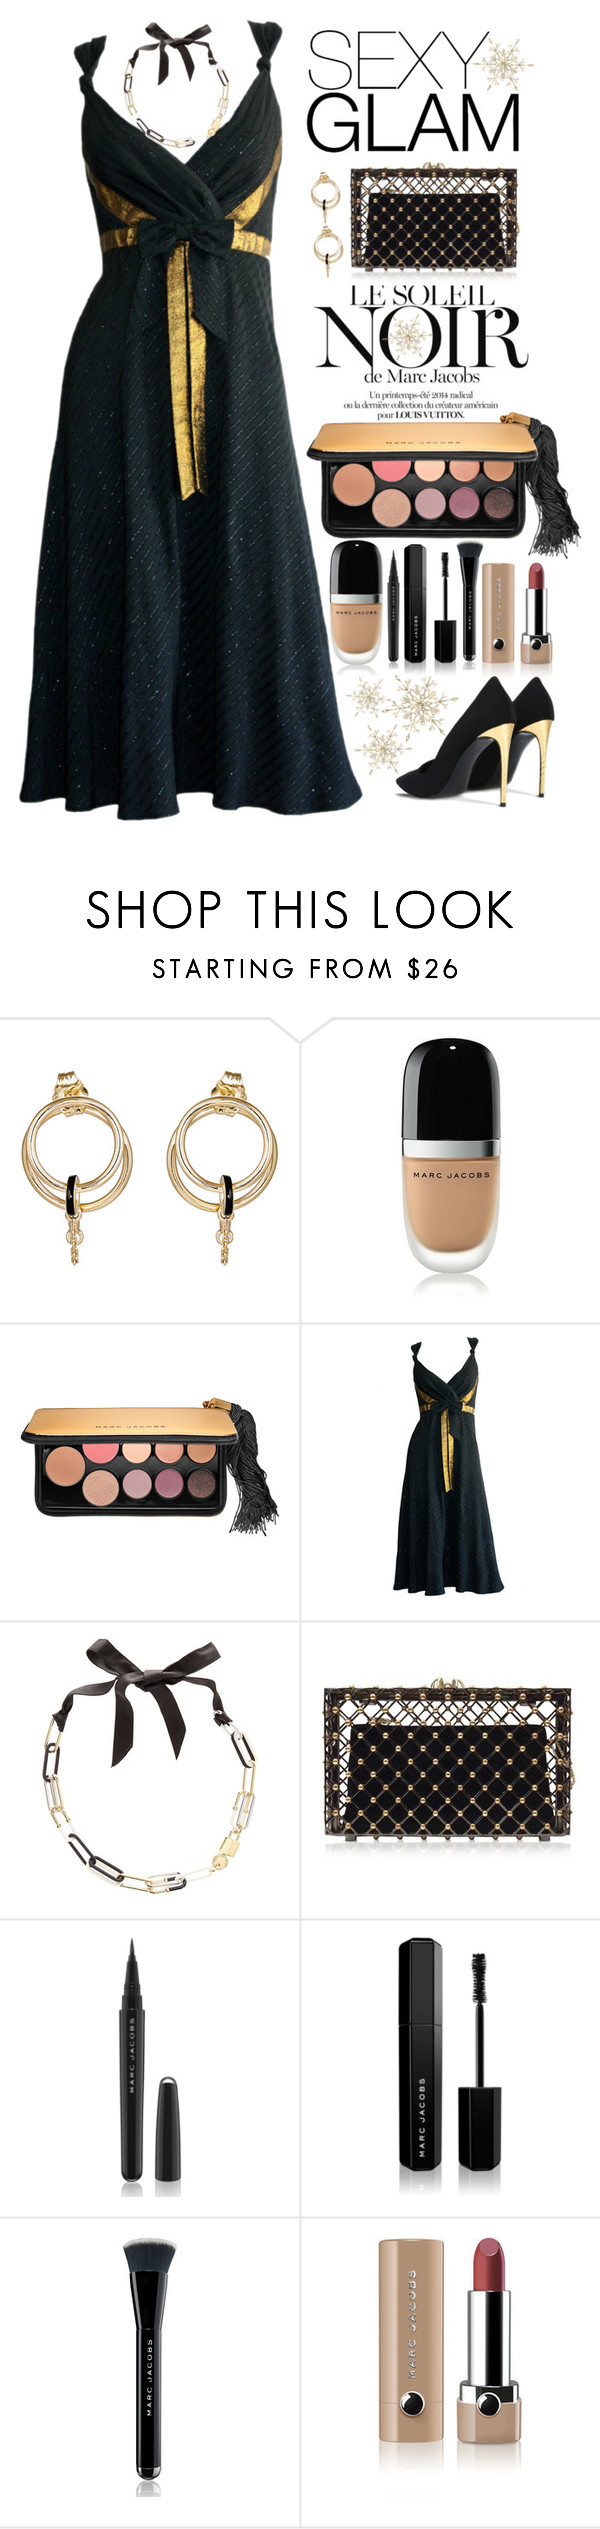 """Holiday Party Glam"" by saifai ❤ liked on Polyvore featuring beauty, Foundrae, Marc Jacobs, Marc by Marc Jacobs, Charlotte Olympia, STELLA McCARTNEY and goglam"